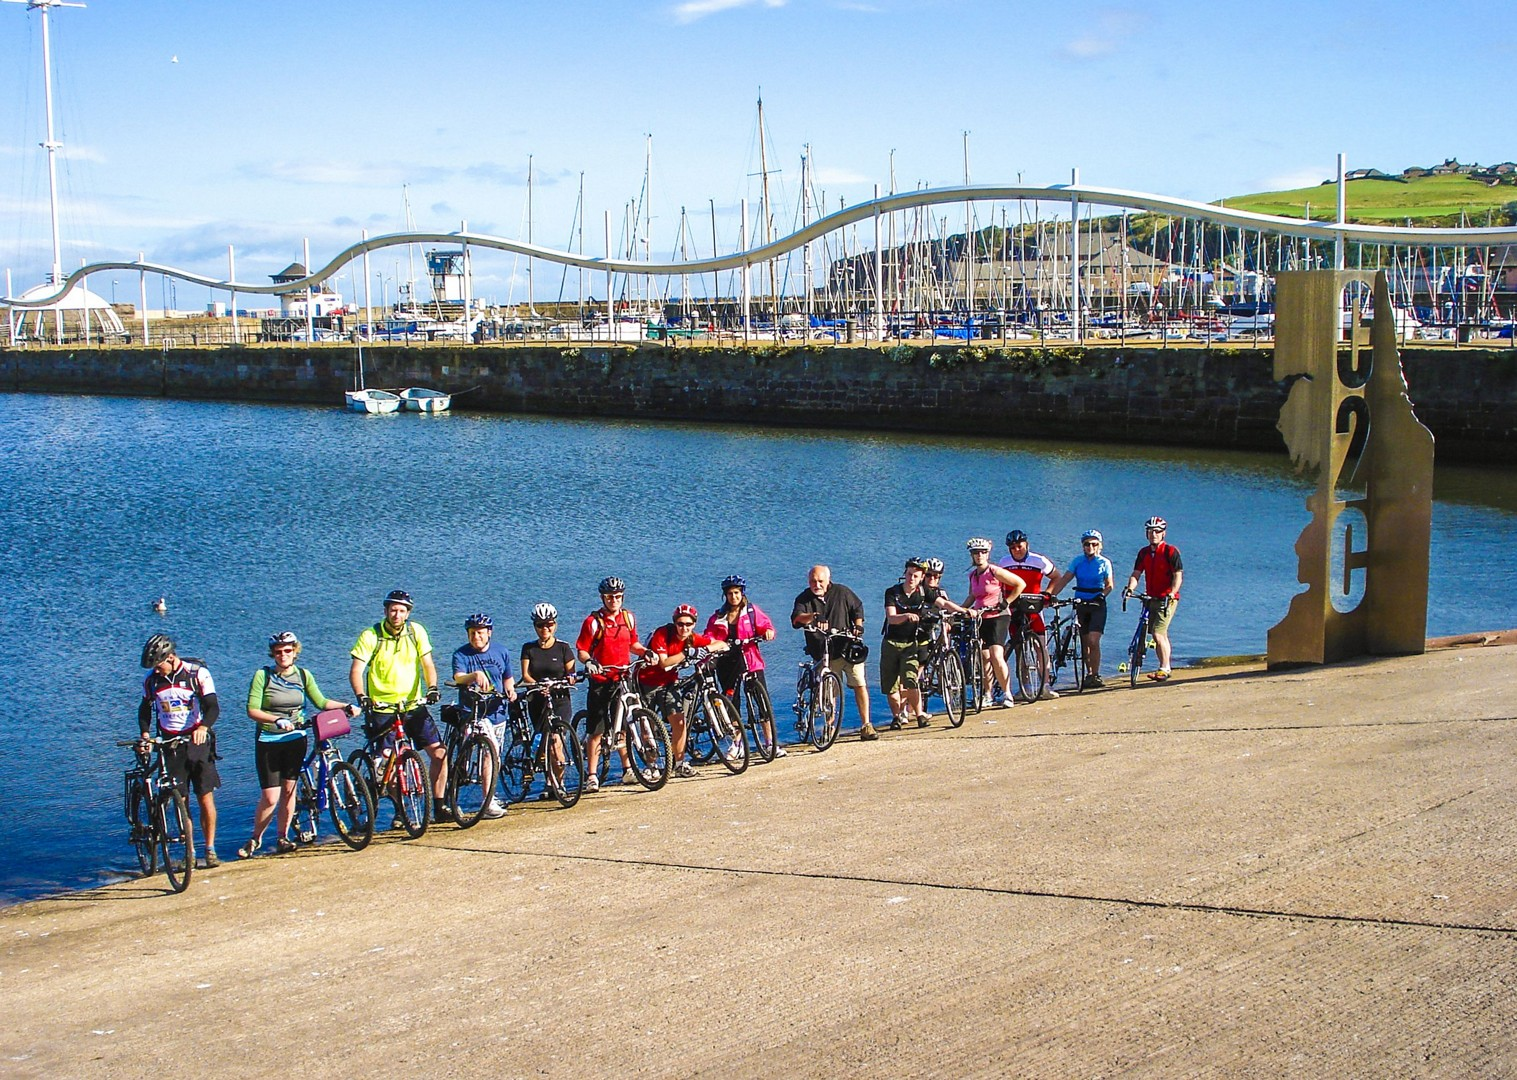 whitehaven-c2c-coast-to-coast-uk-cycling-tour.jpg - UK - C2C - Coast to Coast 3 Days Cycling - Self-Guided Leisure Cycling Holiday - Leisure Cycling